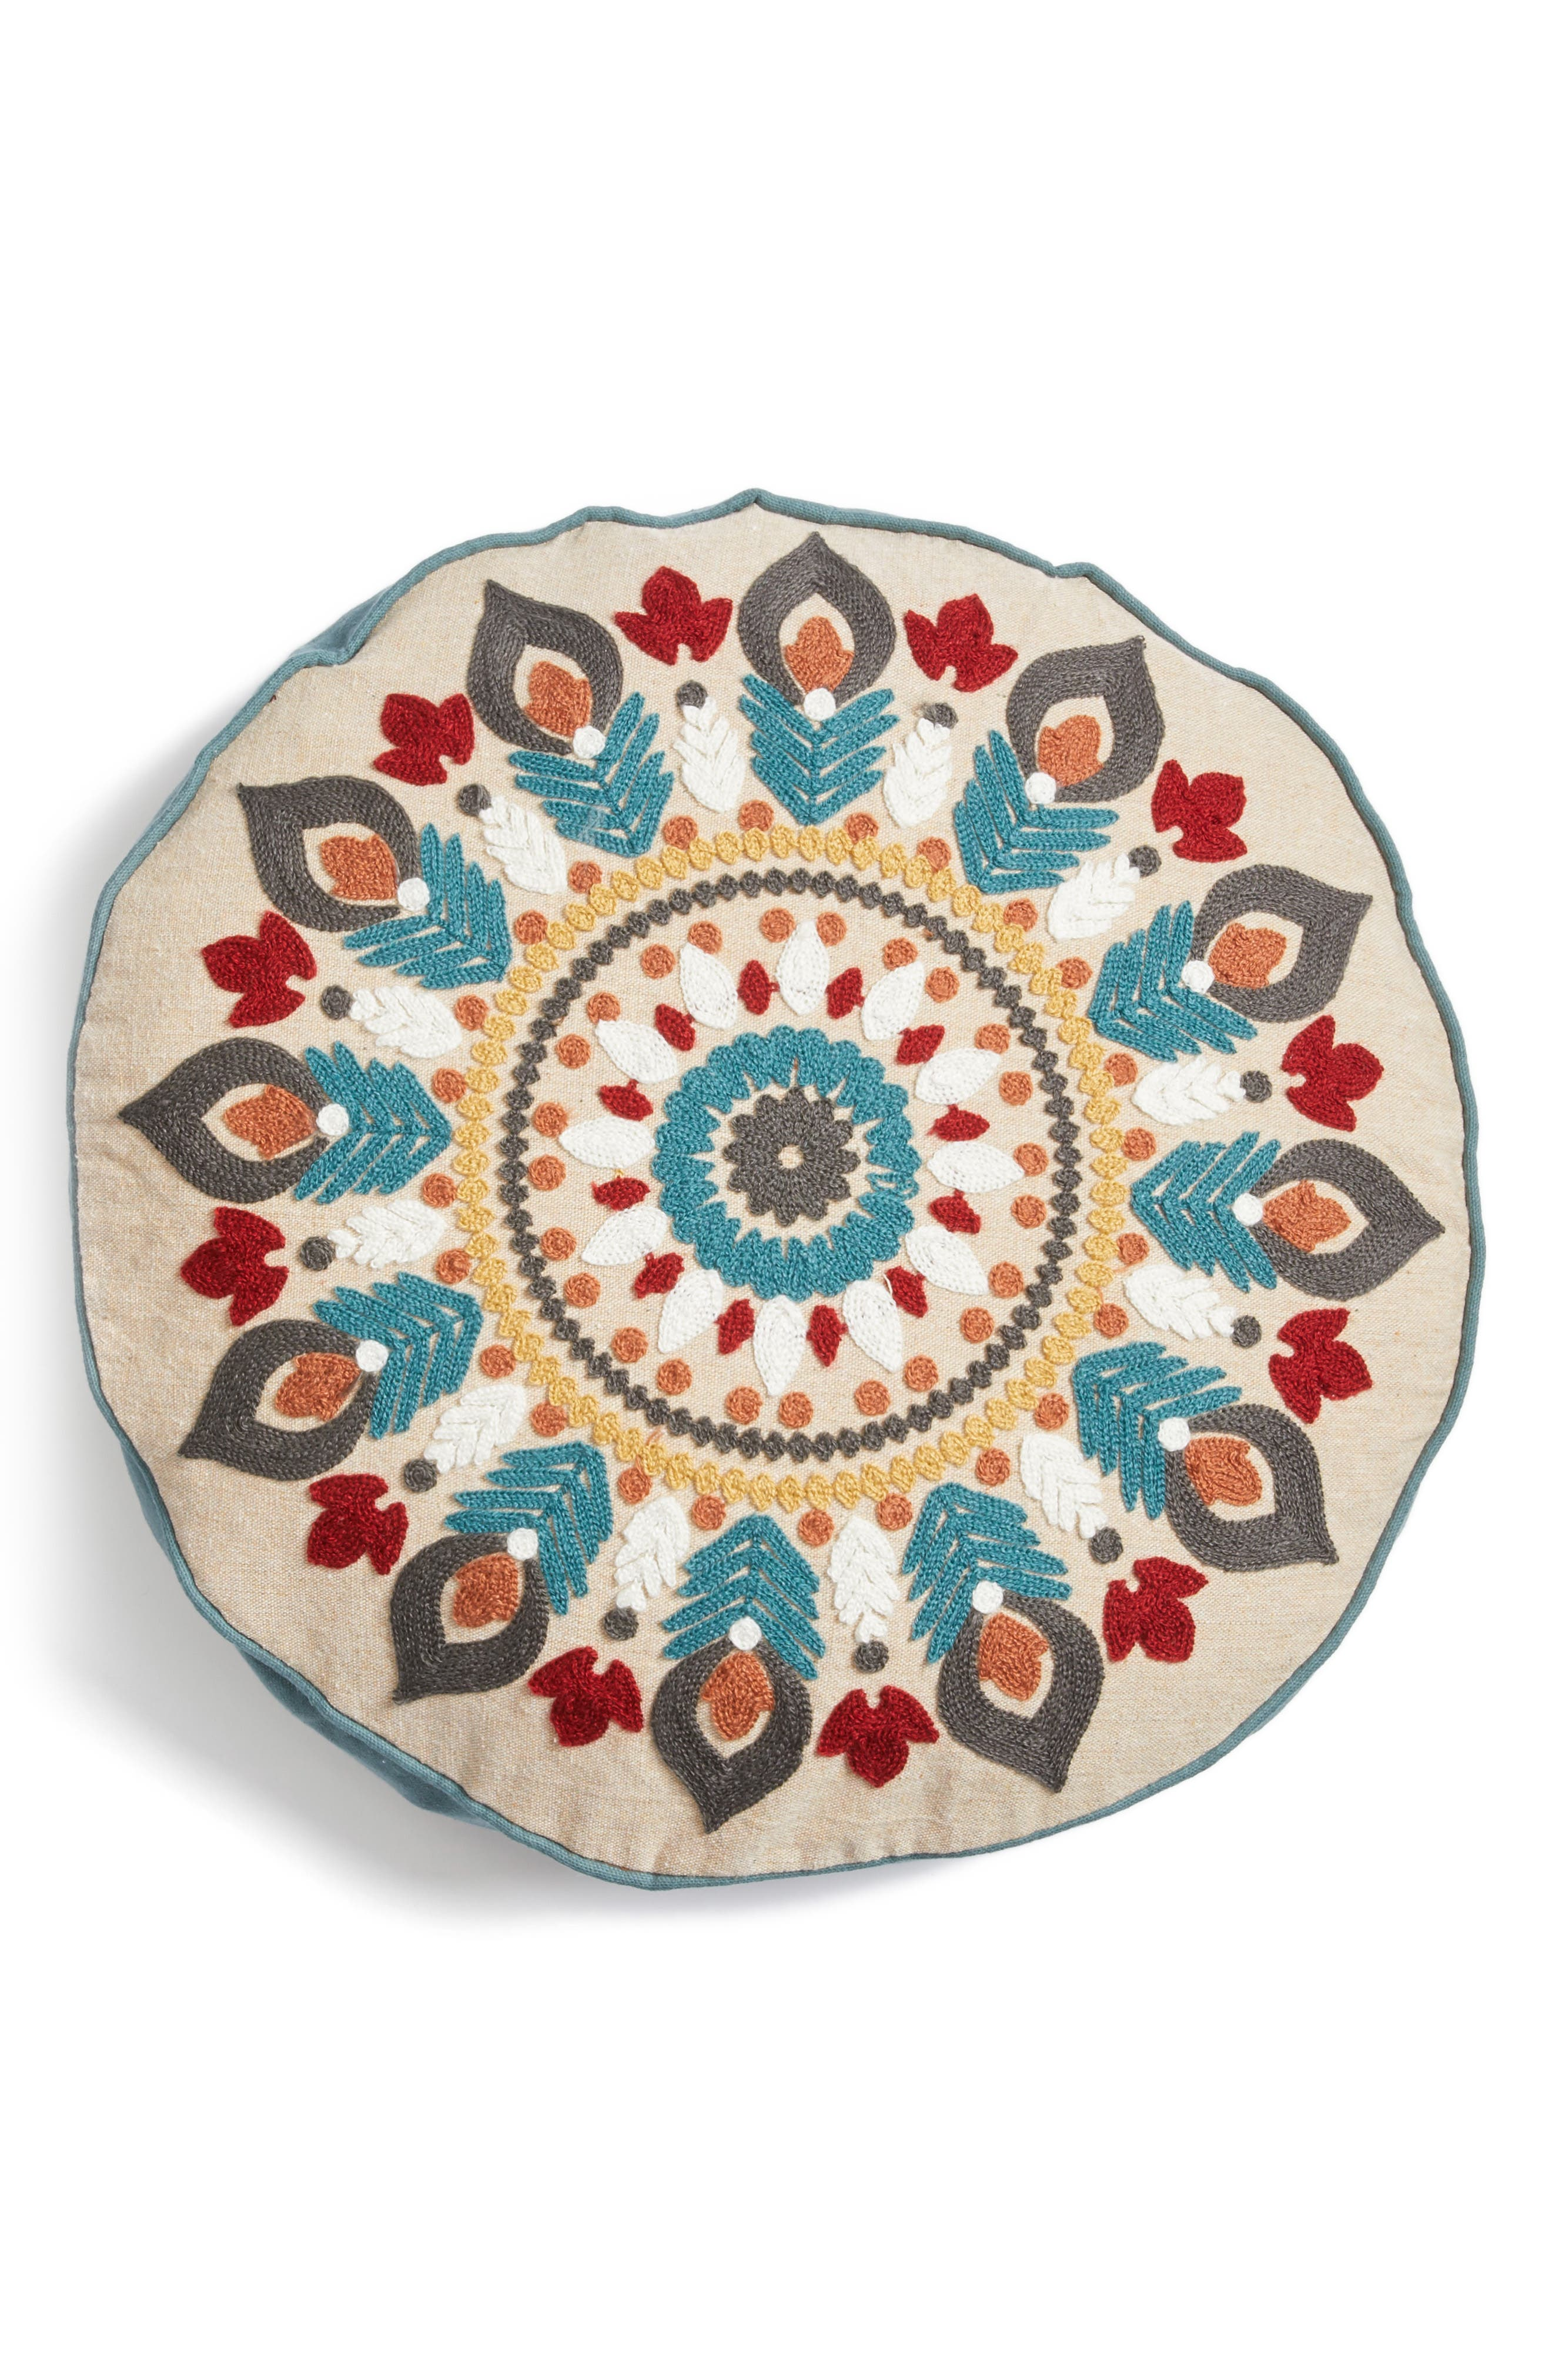 Main Image - Levtex Presidio Embroidered Round Accent Pillow